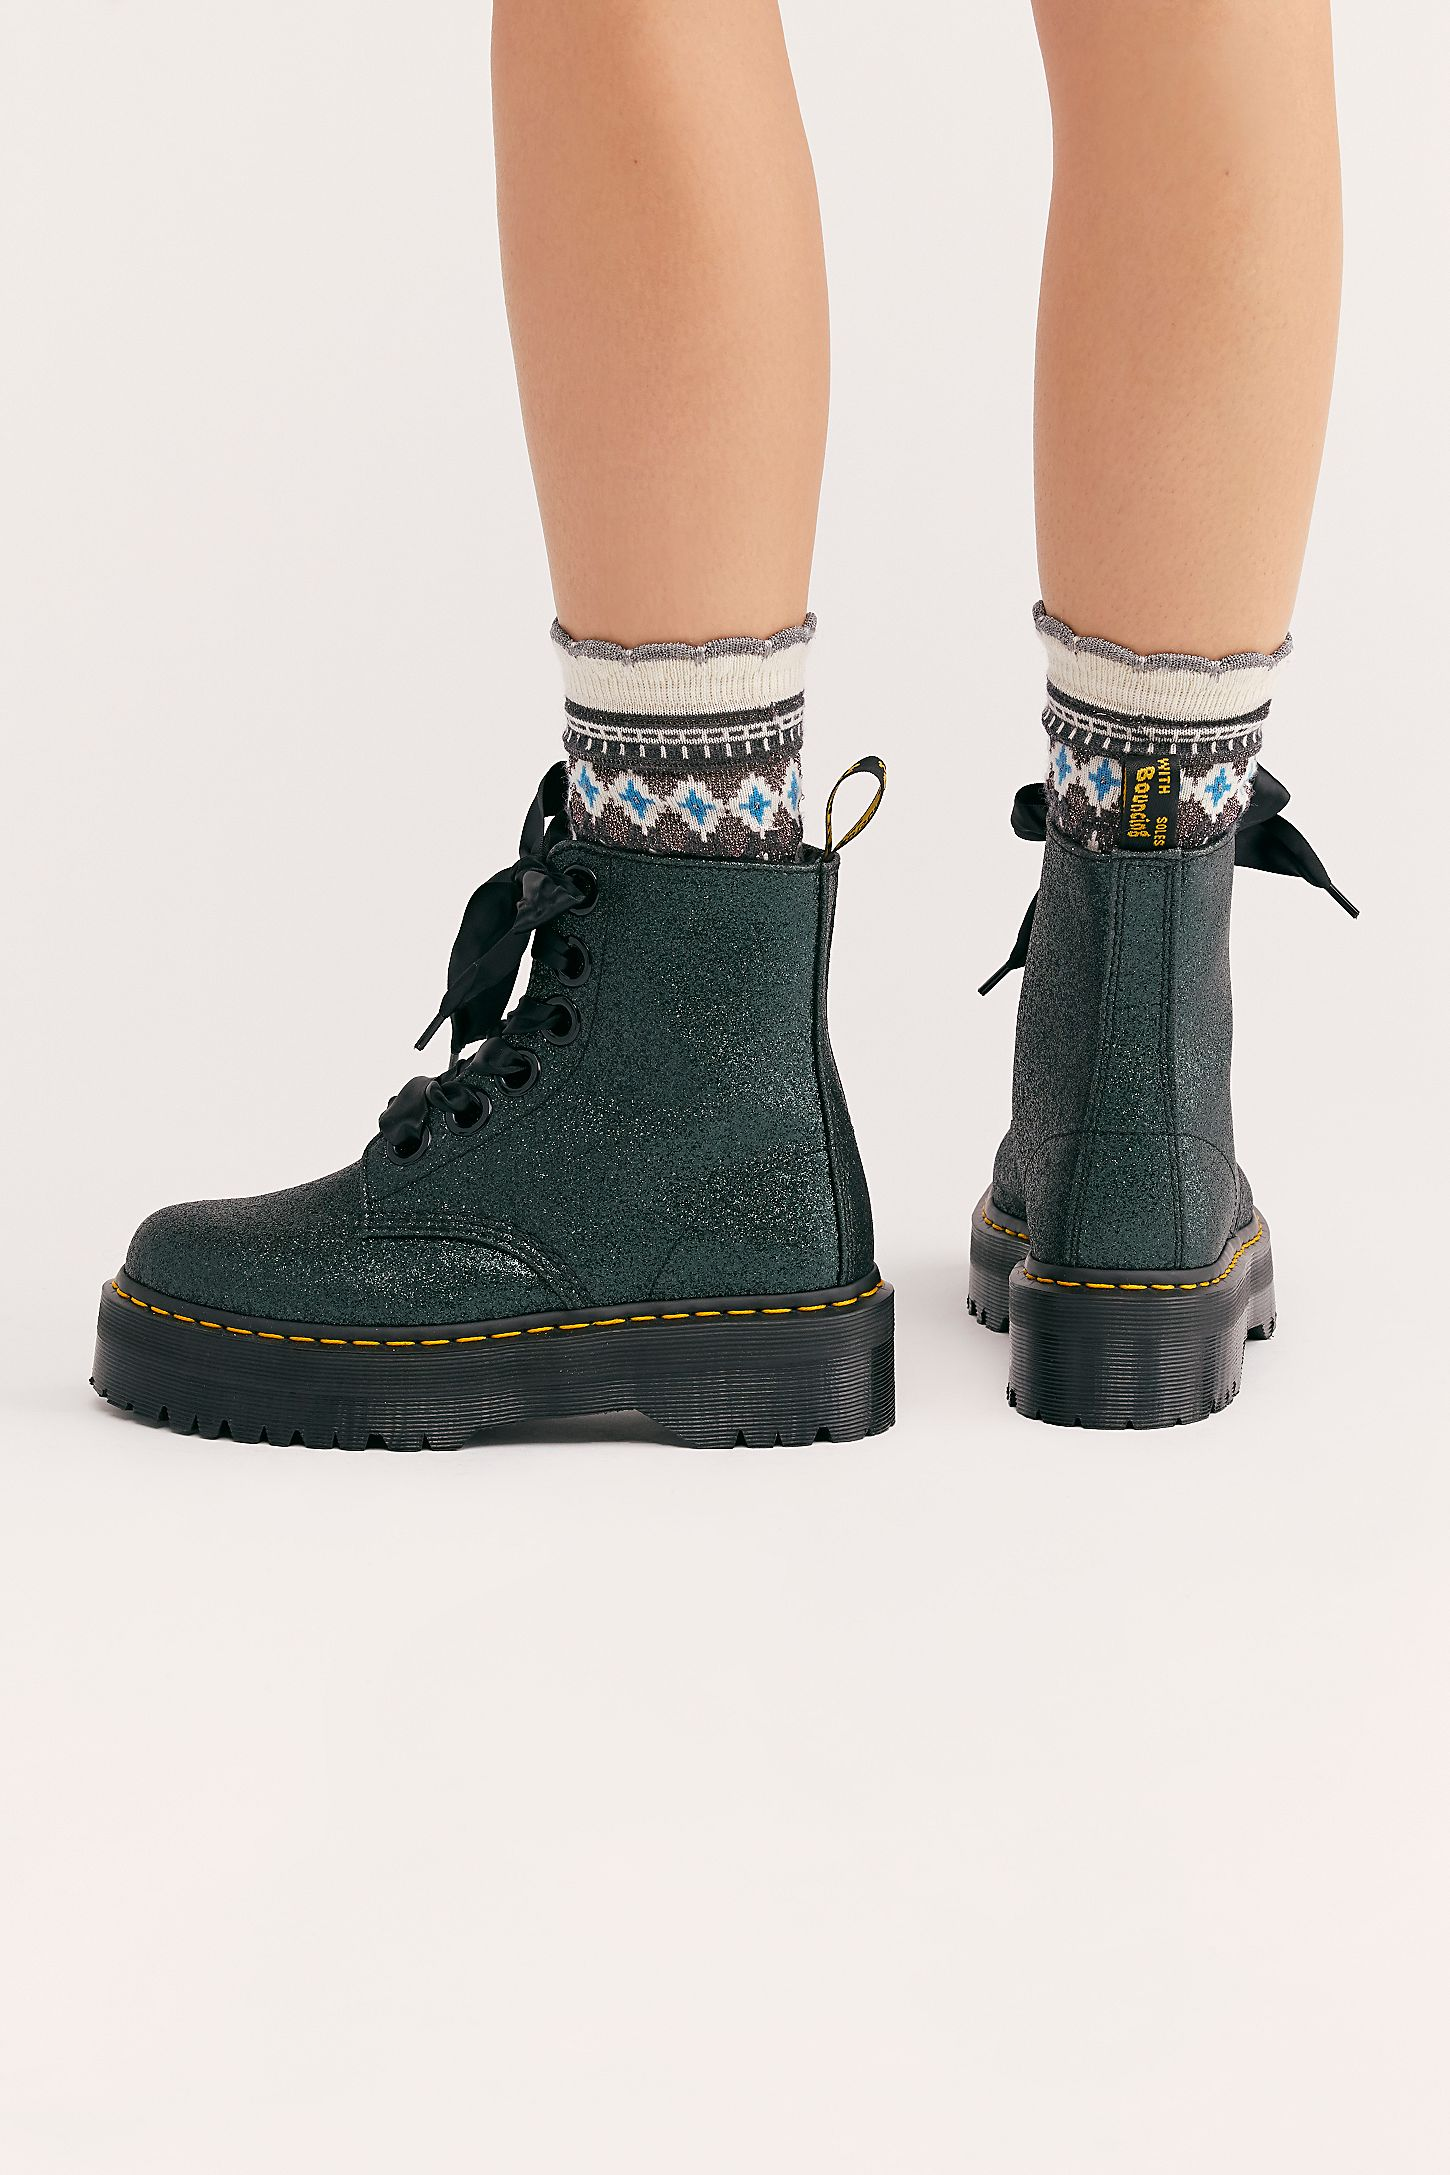 Slide View 4  Dr. Martens Molly Glitter 6 Eye Boot cb2a943286b9